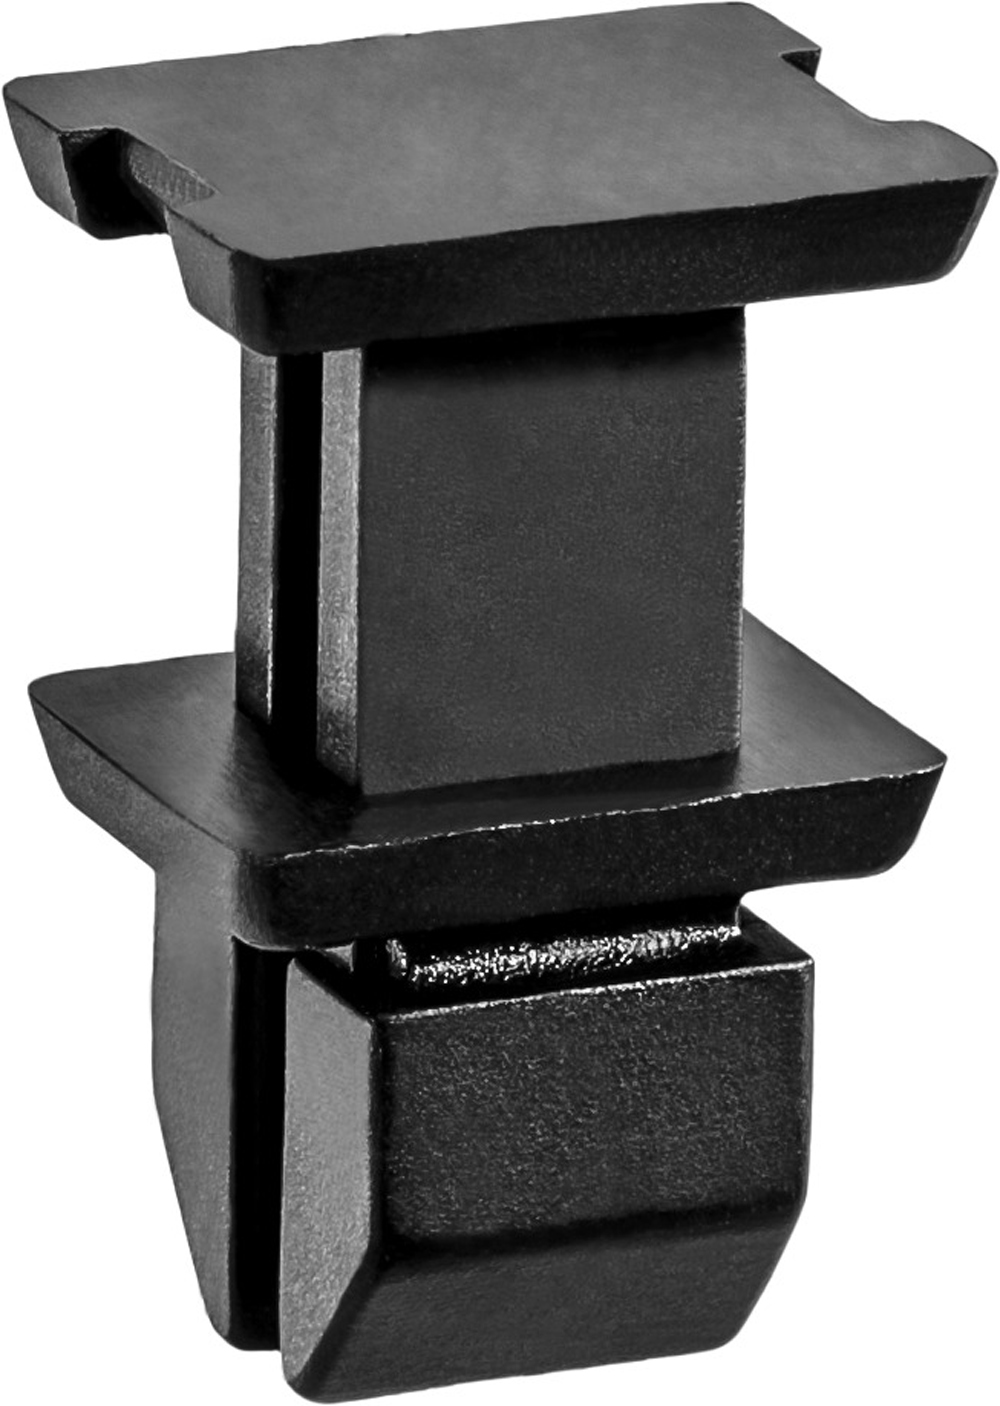 15 Push Type Retainers For Mercedes Benz 124-990-04-92